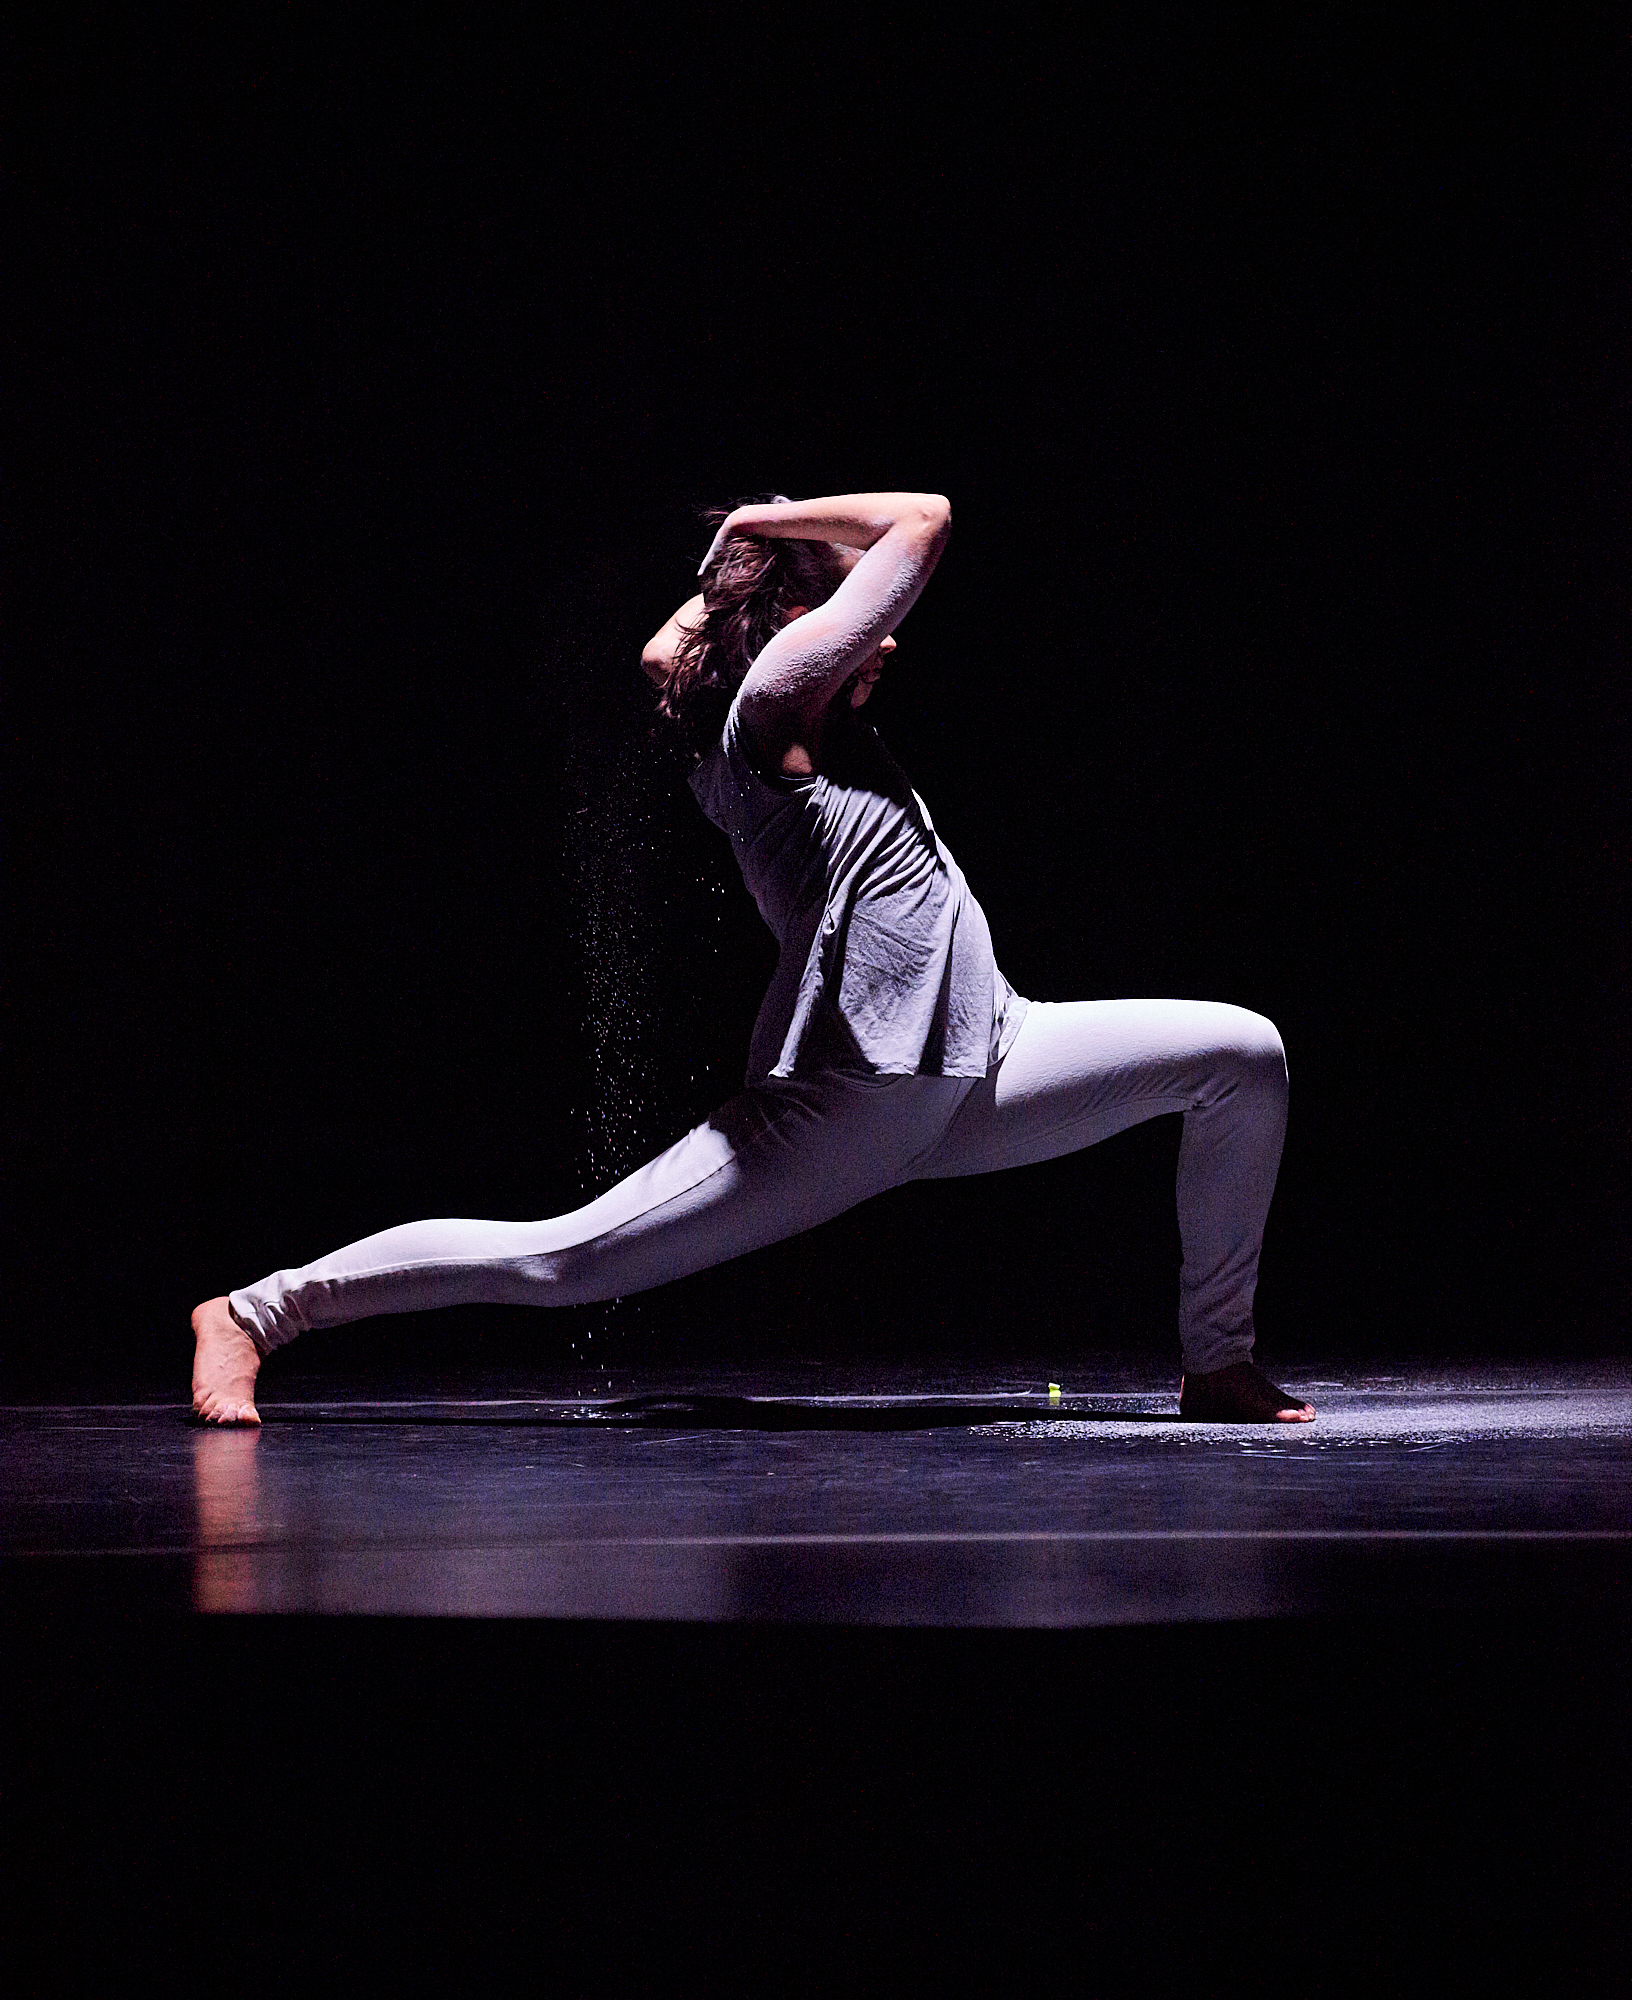 Arch - A Dance Concert. Student dance performances presented by the Colgate Department of Theater, featuring dance performances and senior thesis projects in dance.